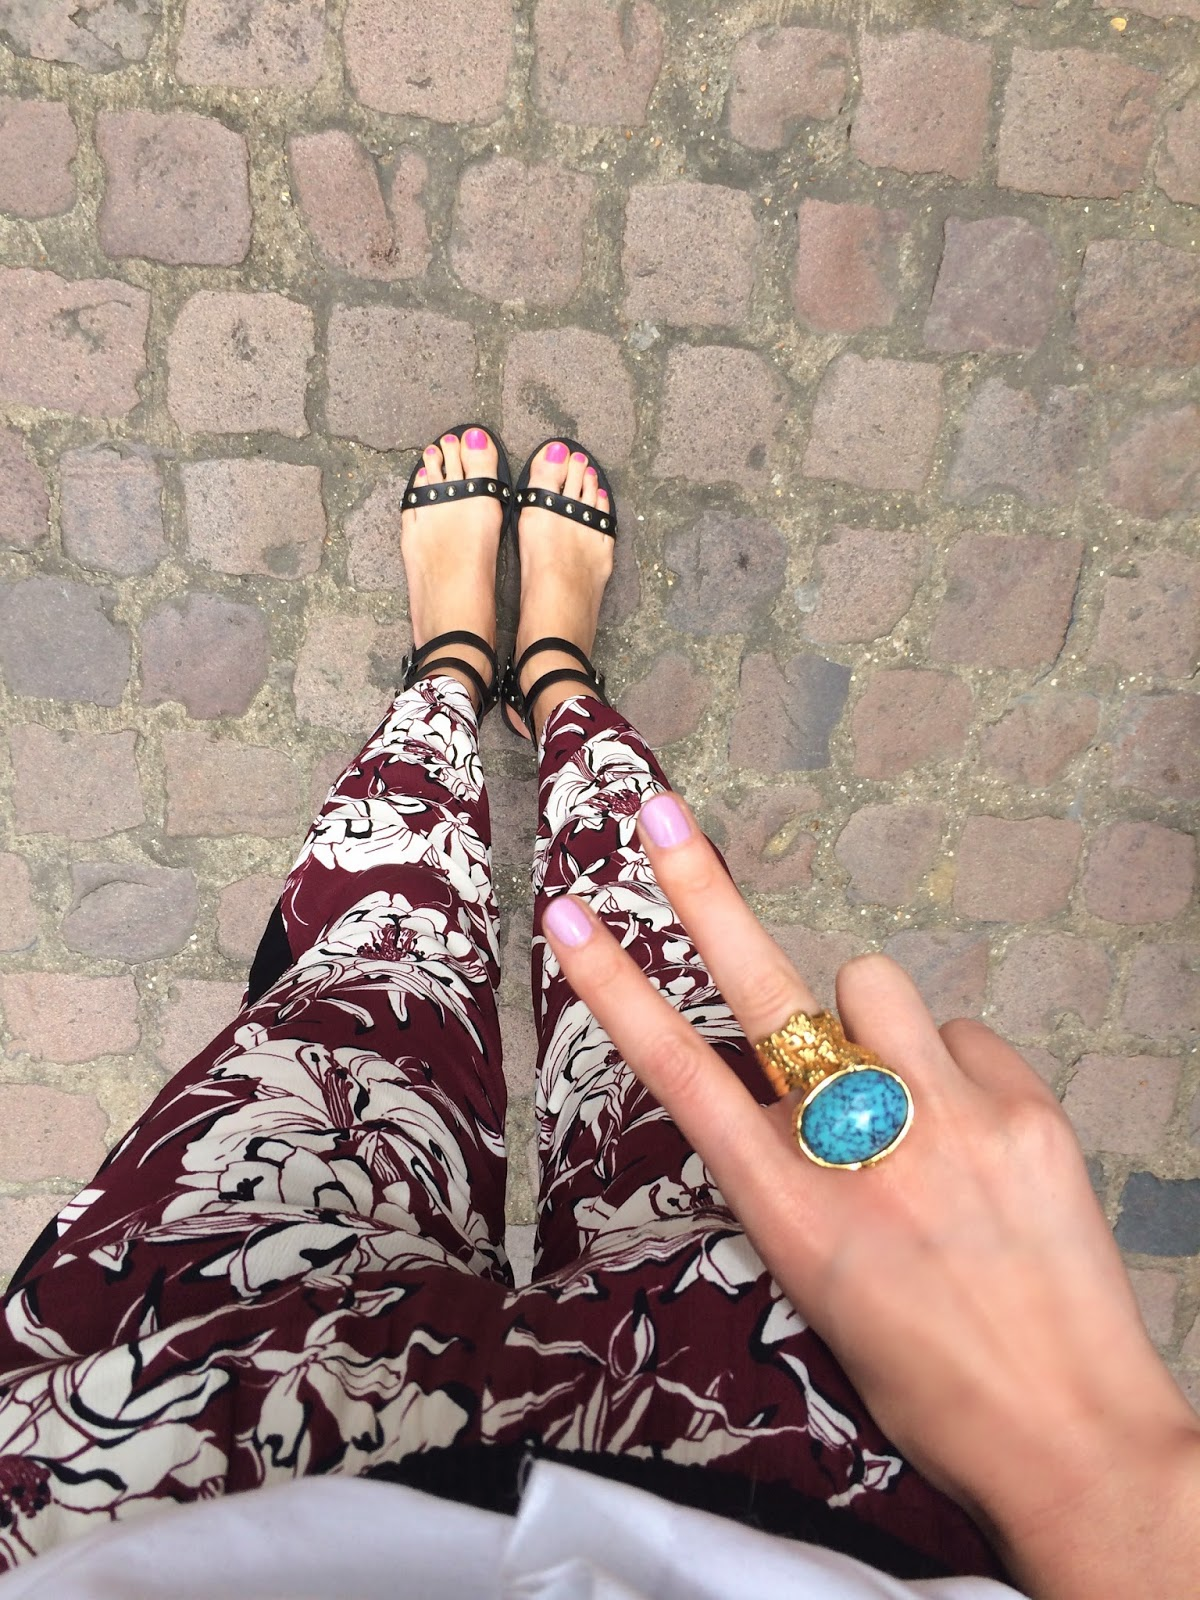 kurt geiger, kurt geiger kad sandals, studded sandals, isabel marant inspired sandals, ysl ring, ysl arty ring, zara printed trousers, red printed trousers, white shirt, fwis, fashion blogger, fwis blogger